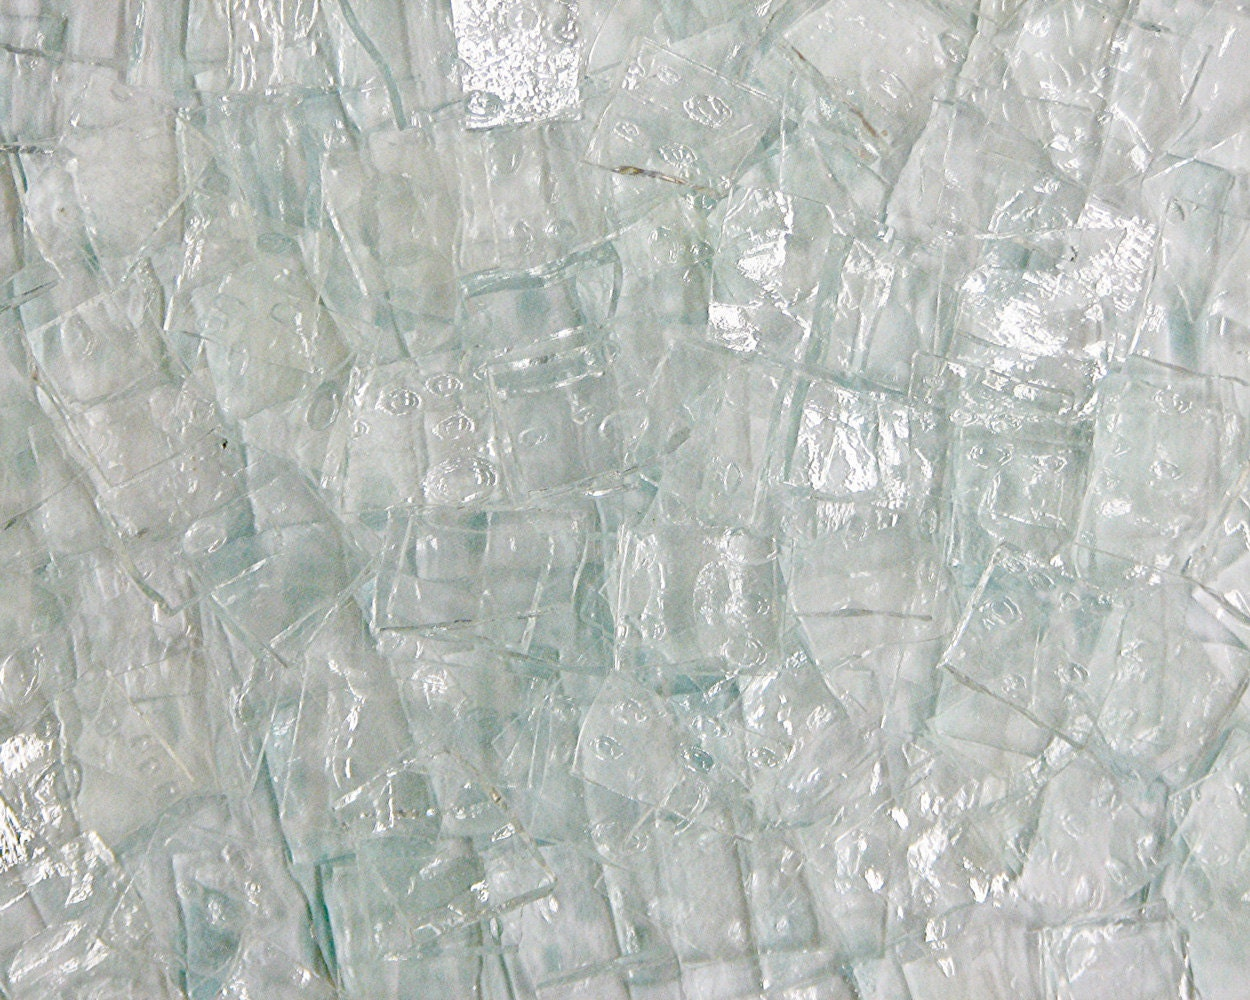 Crystal Clear Glass Tile 200 Handcut Textured Wavy And